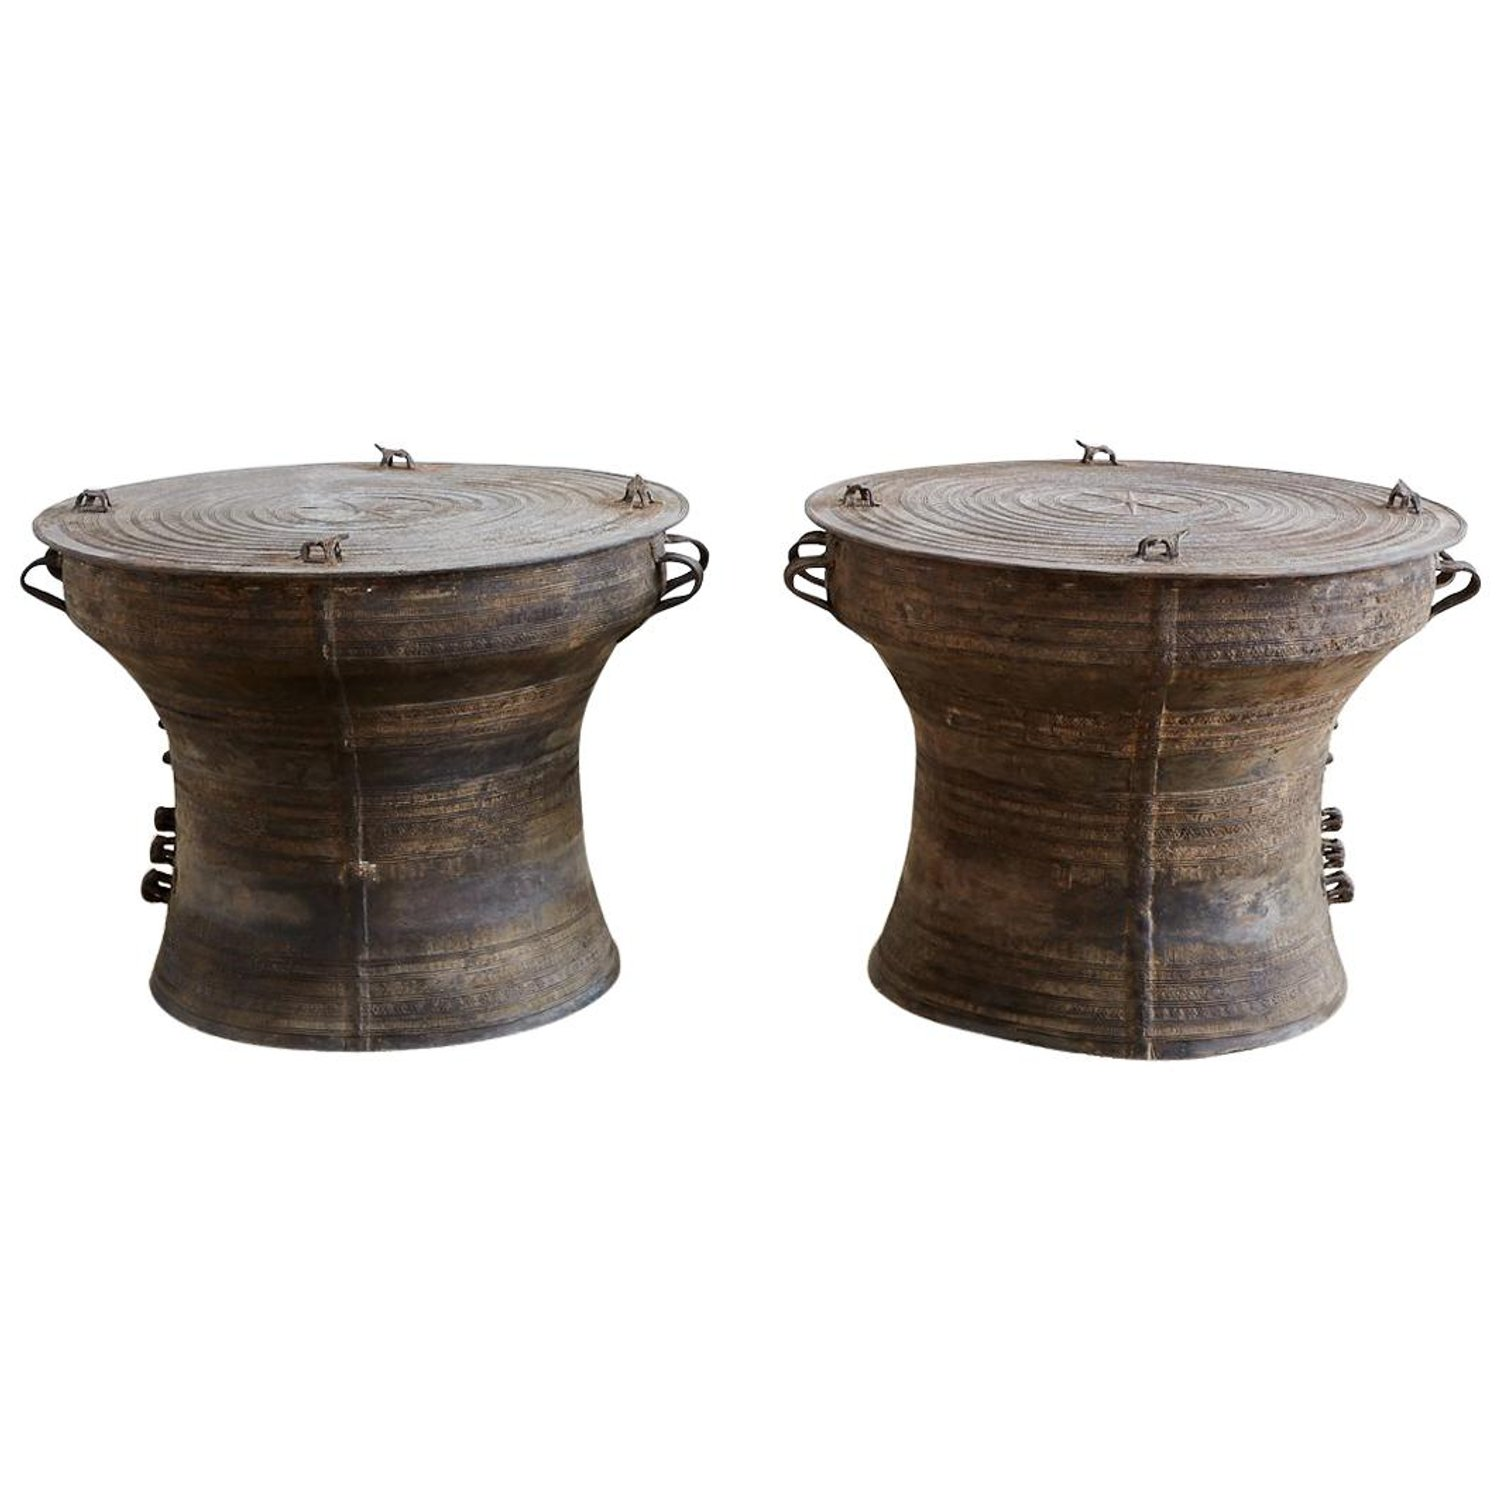 pair southeast asian bronze rain drum tables for master accent table nightstand with drawers gazebo resin patio side west elm mid century rug high traditional coffee bedside